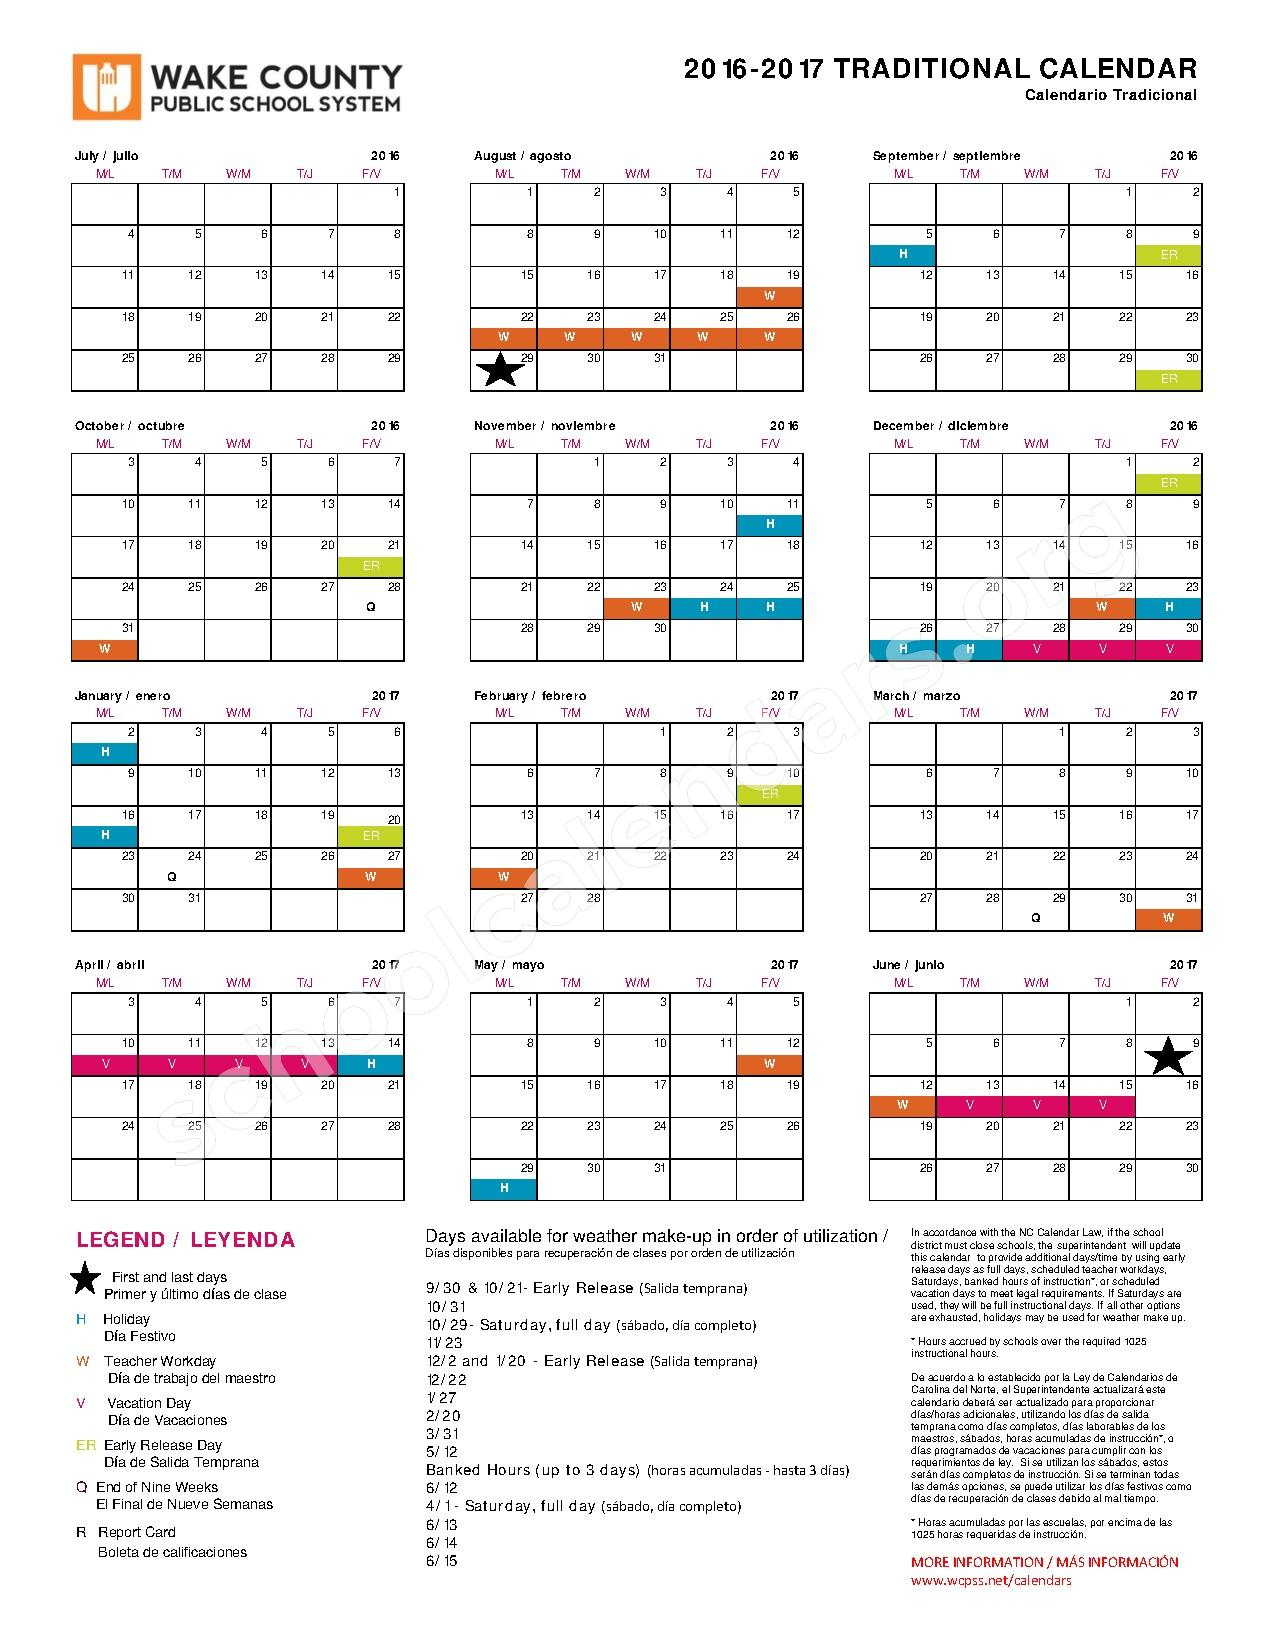 2016 - 2017 Traditional Calendar | Wake County Public School intended for Wake County School System Calendars